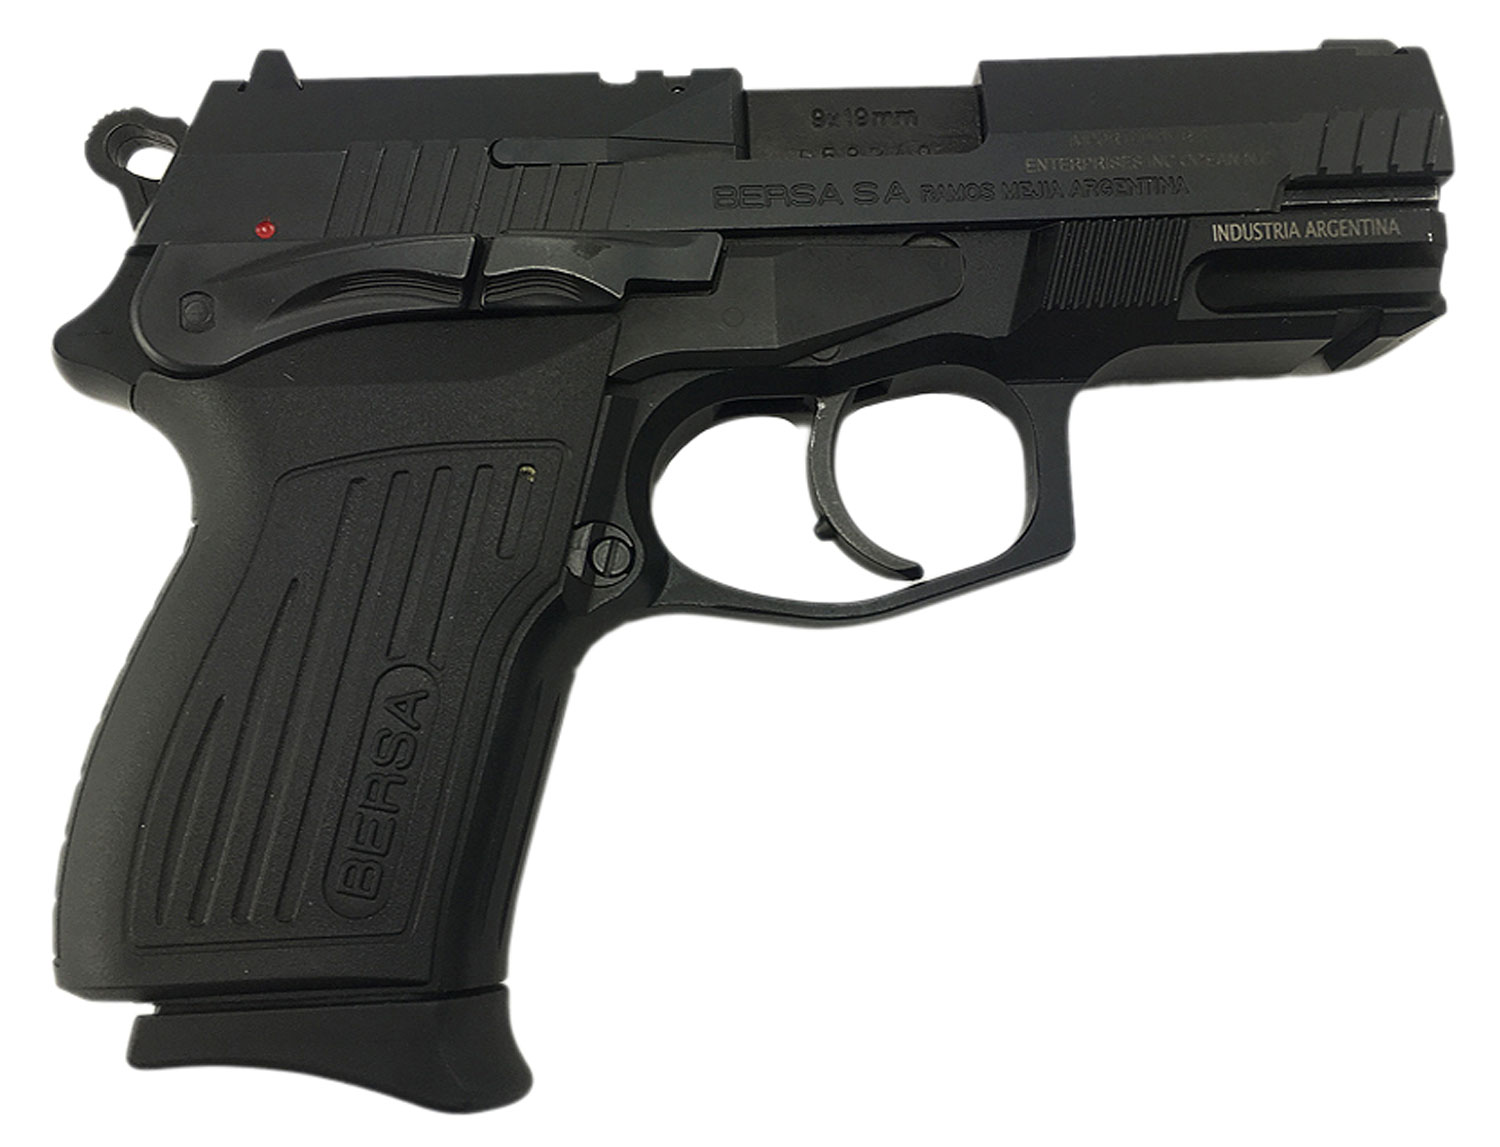 Bersa TPR40CM Thunder Pro Compact Single/Double 40 Smith & Wesson (S&W) 3.25